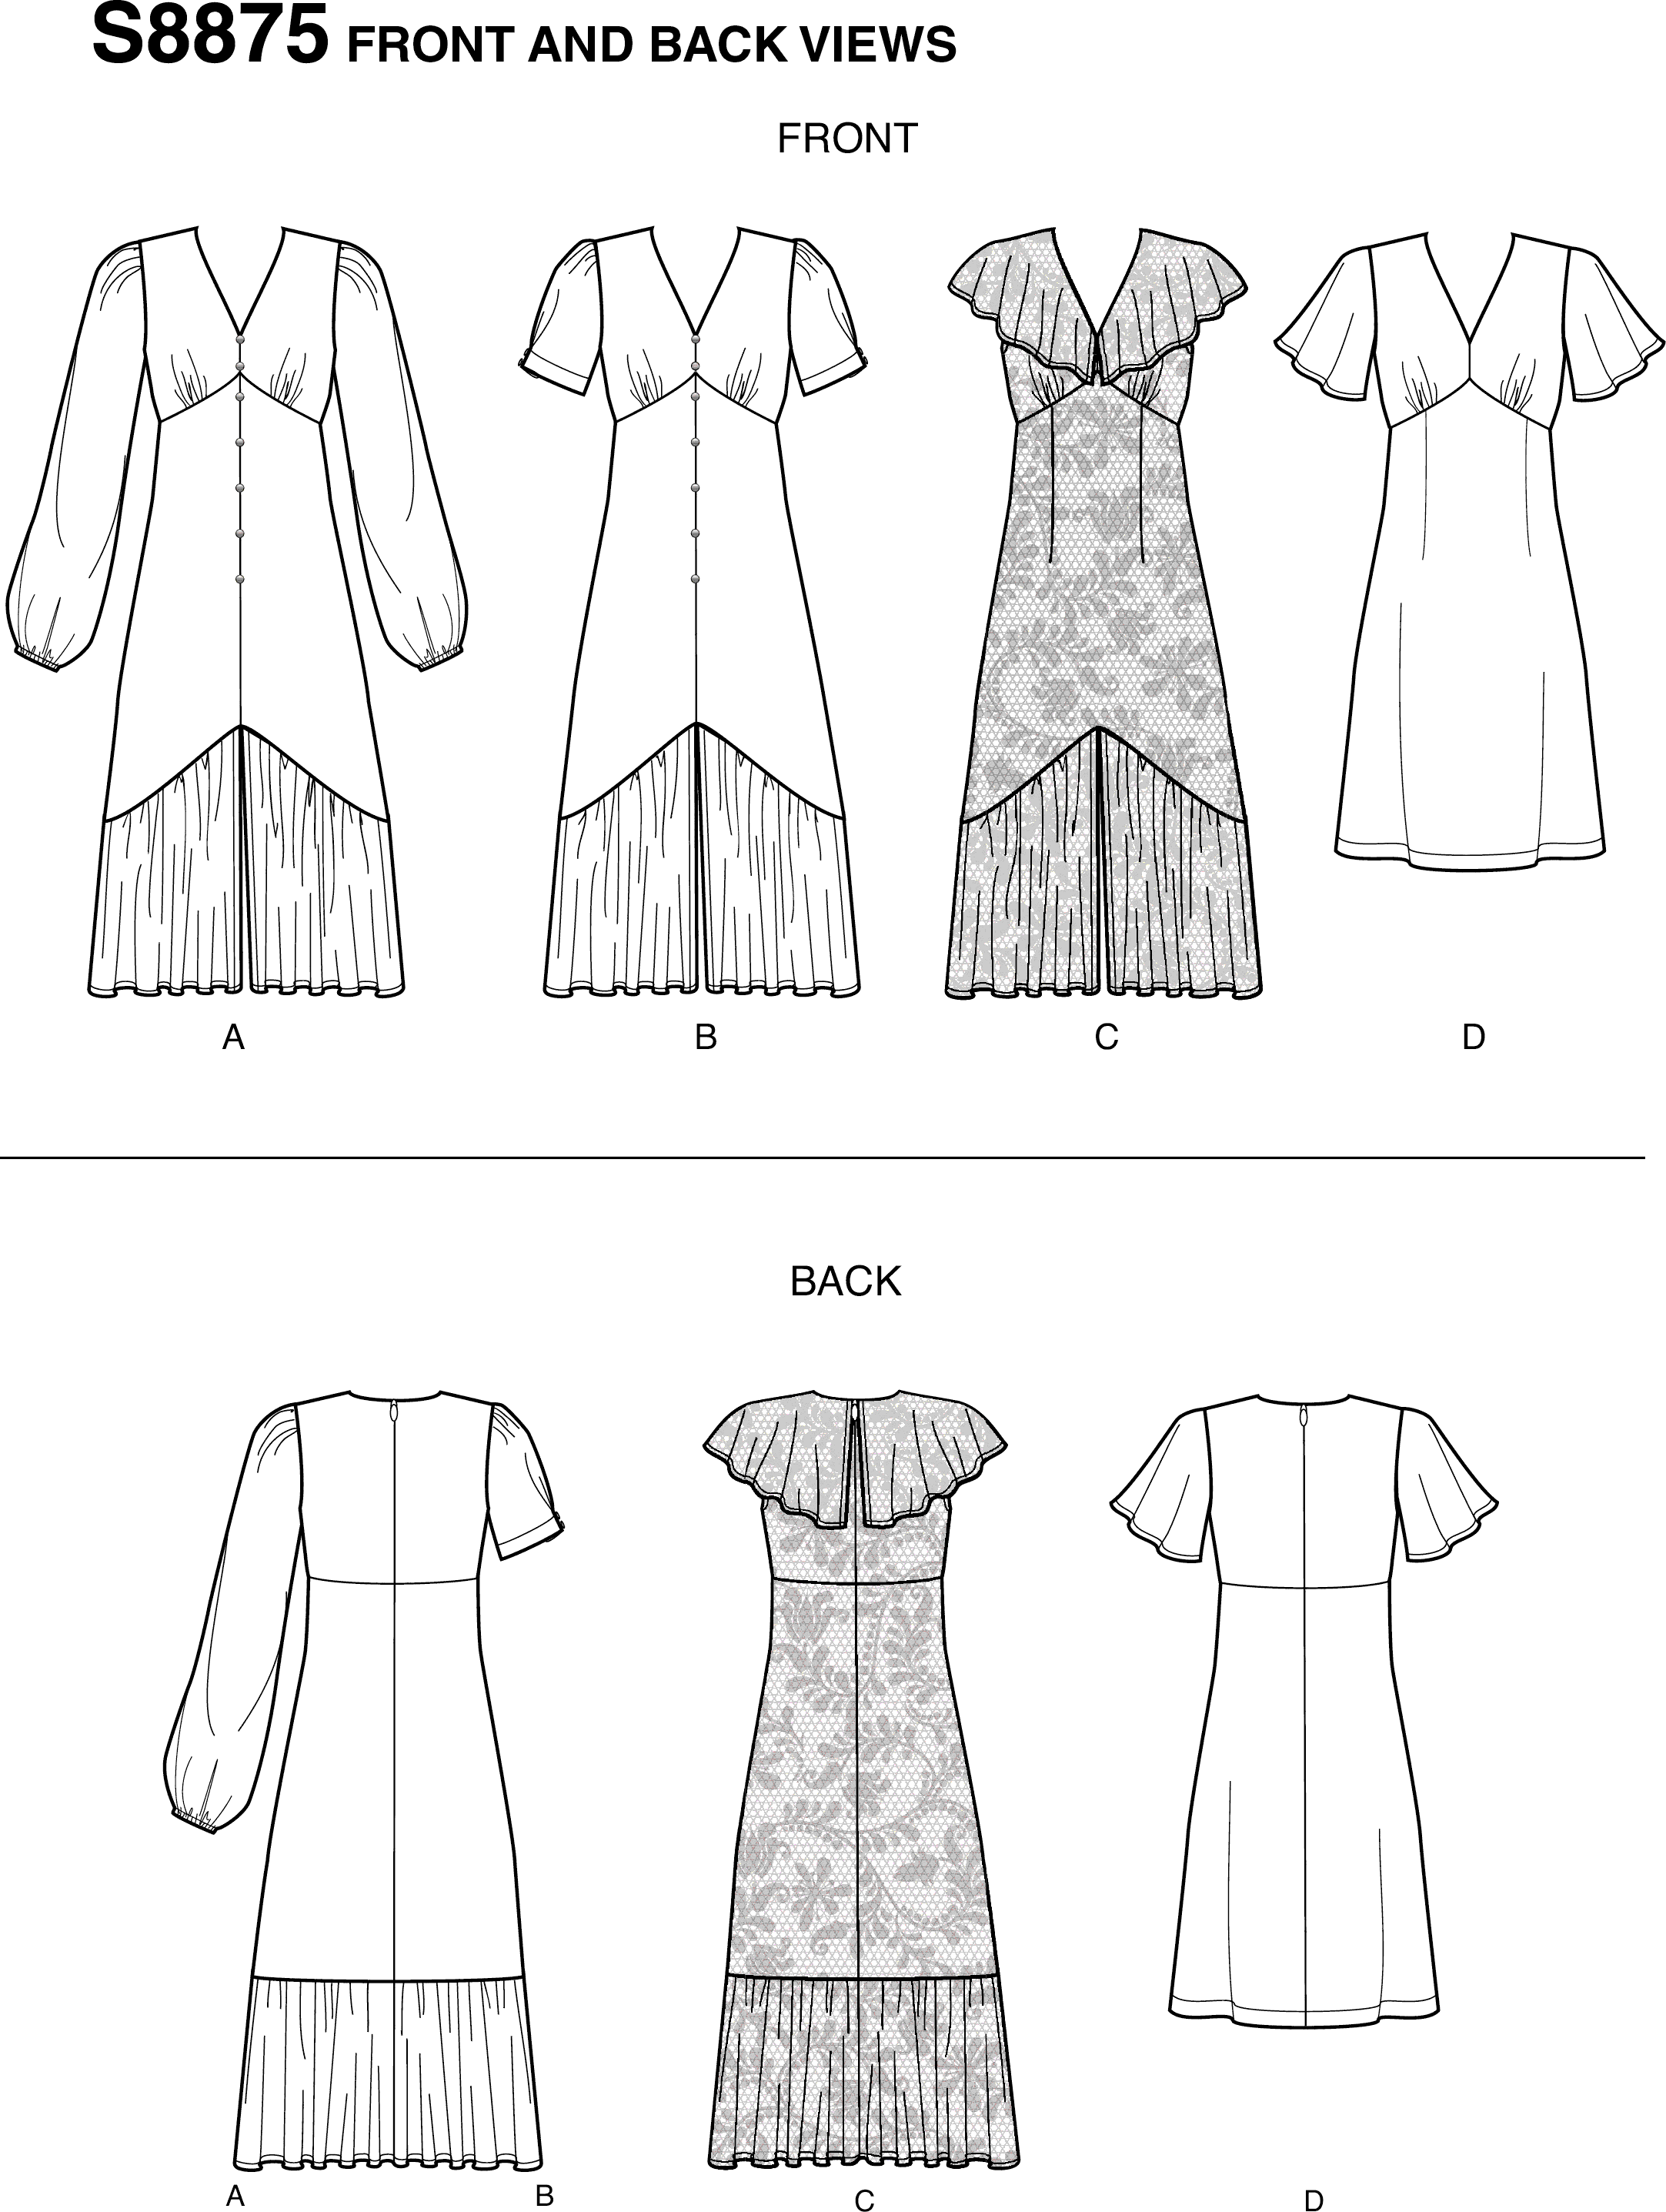 Simplicity Sewing Pattern S8875 Misses Dresses 8875 Line Art From Patternsandplains.com